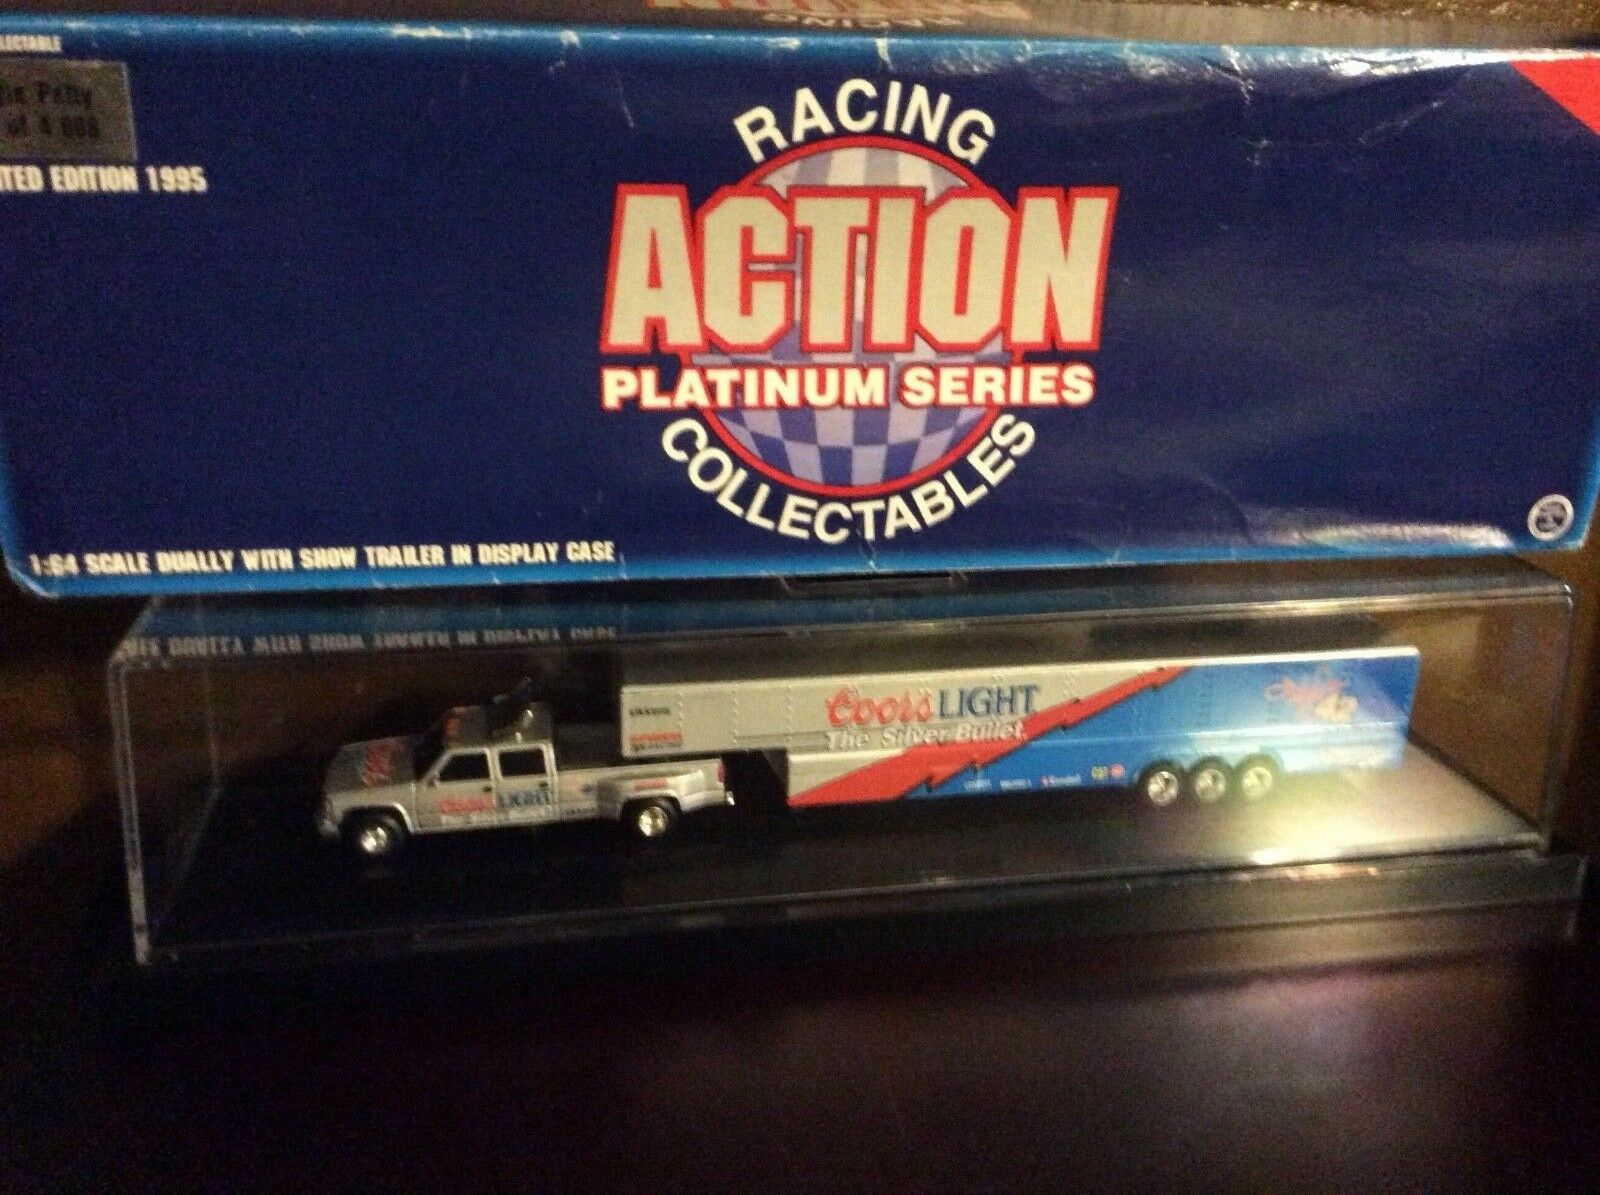 Coors lite Chevy dually show truck trailer Silber bullet Kyle petty pickup 1 64